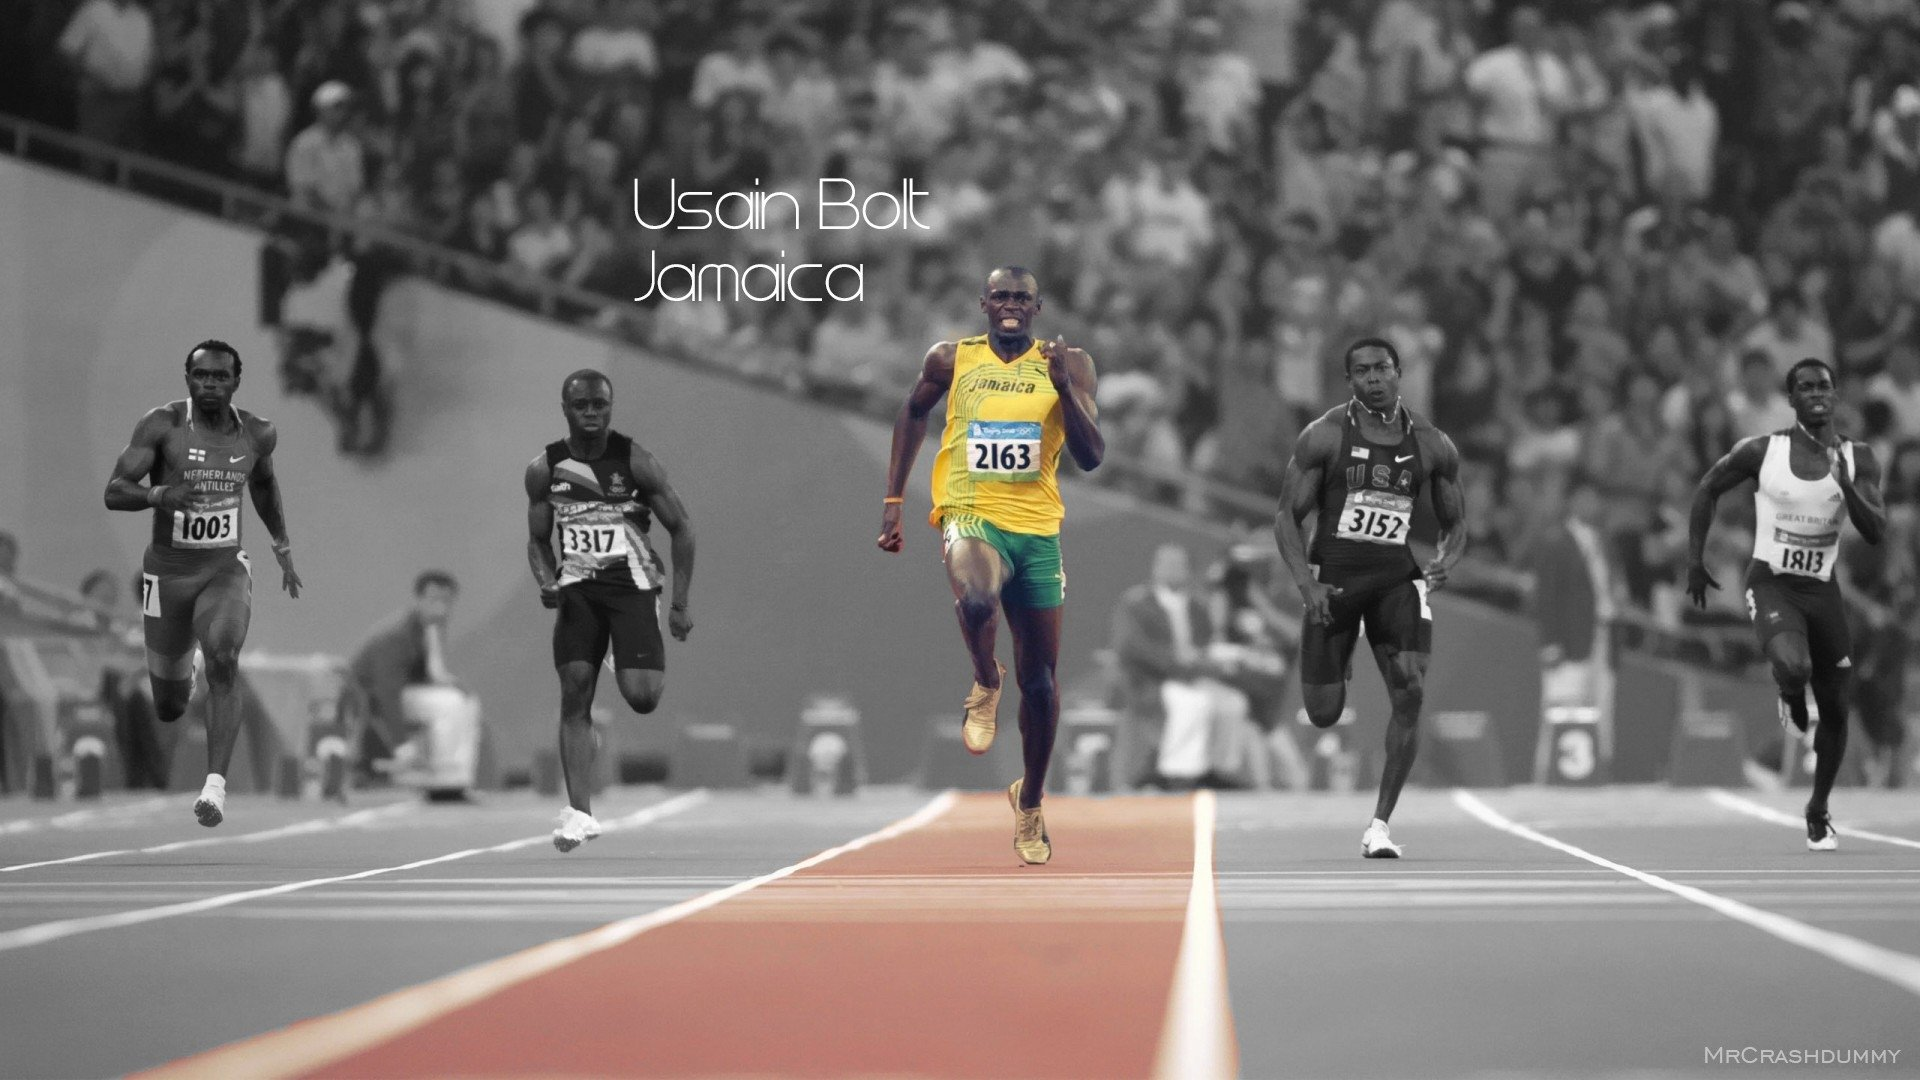 2 Usain Bolt HD Wallpapers